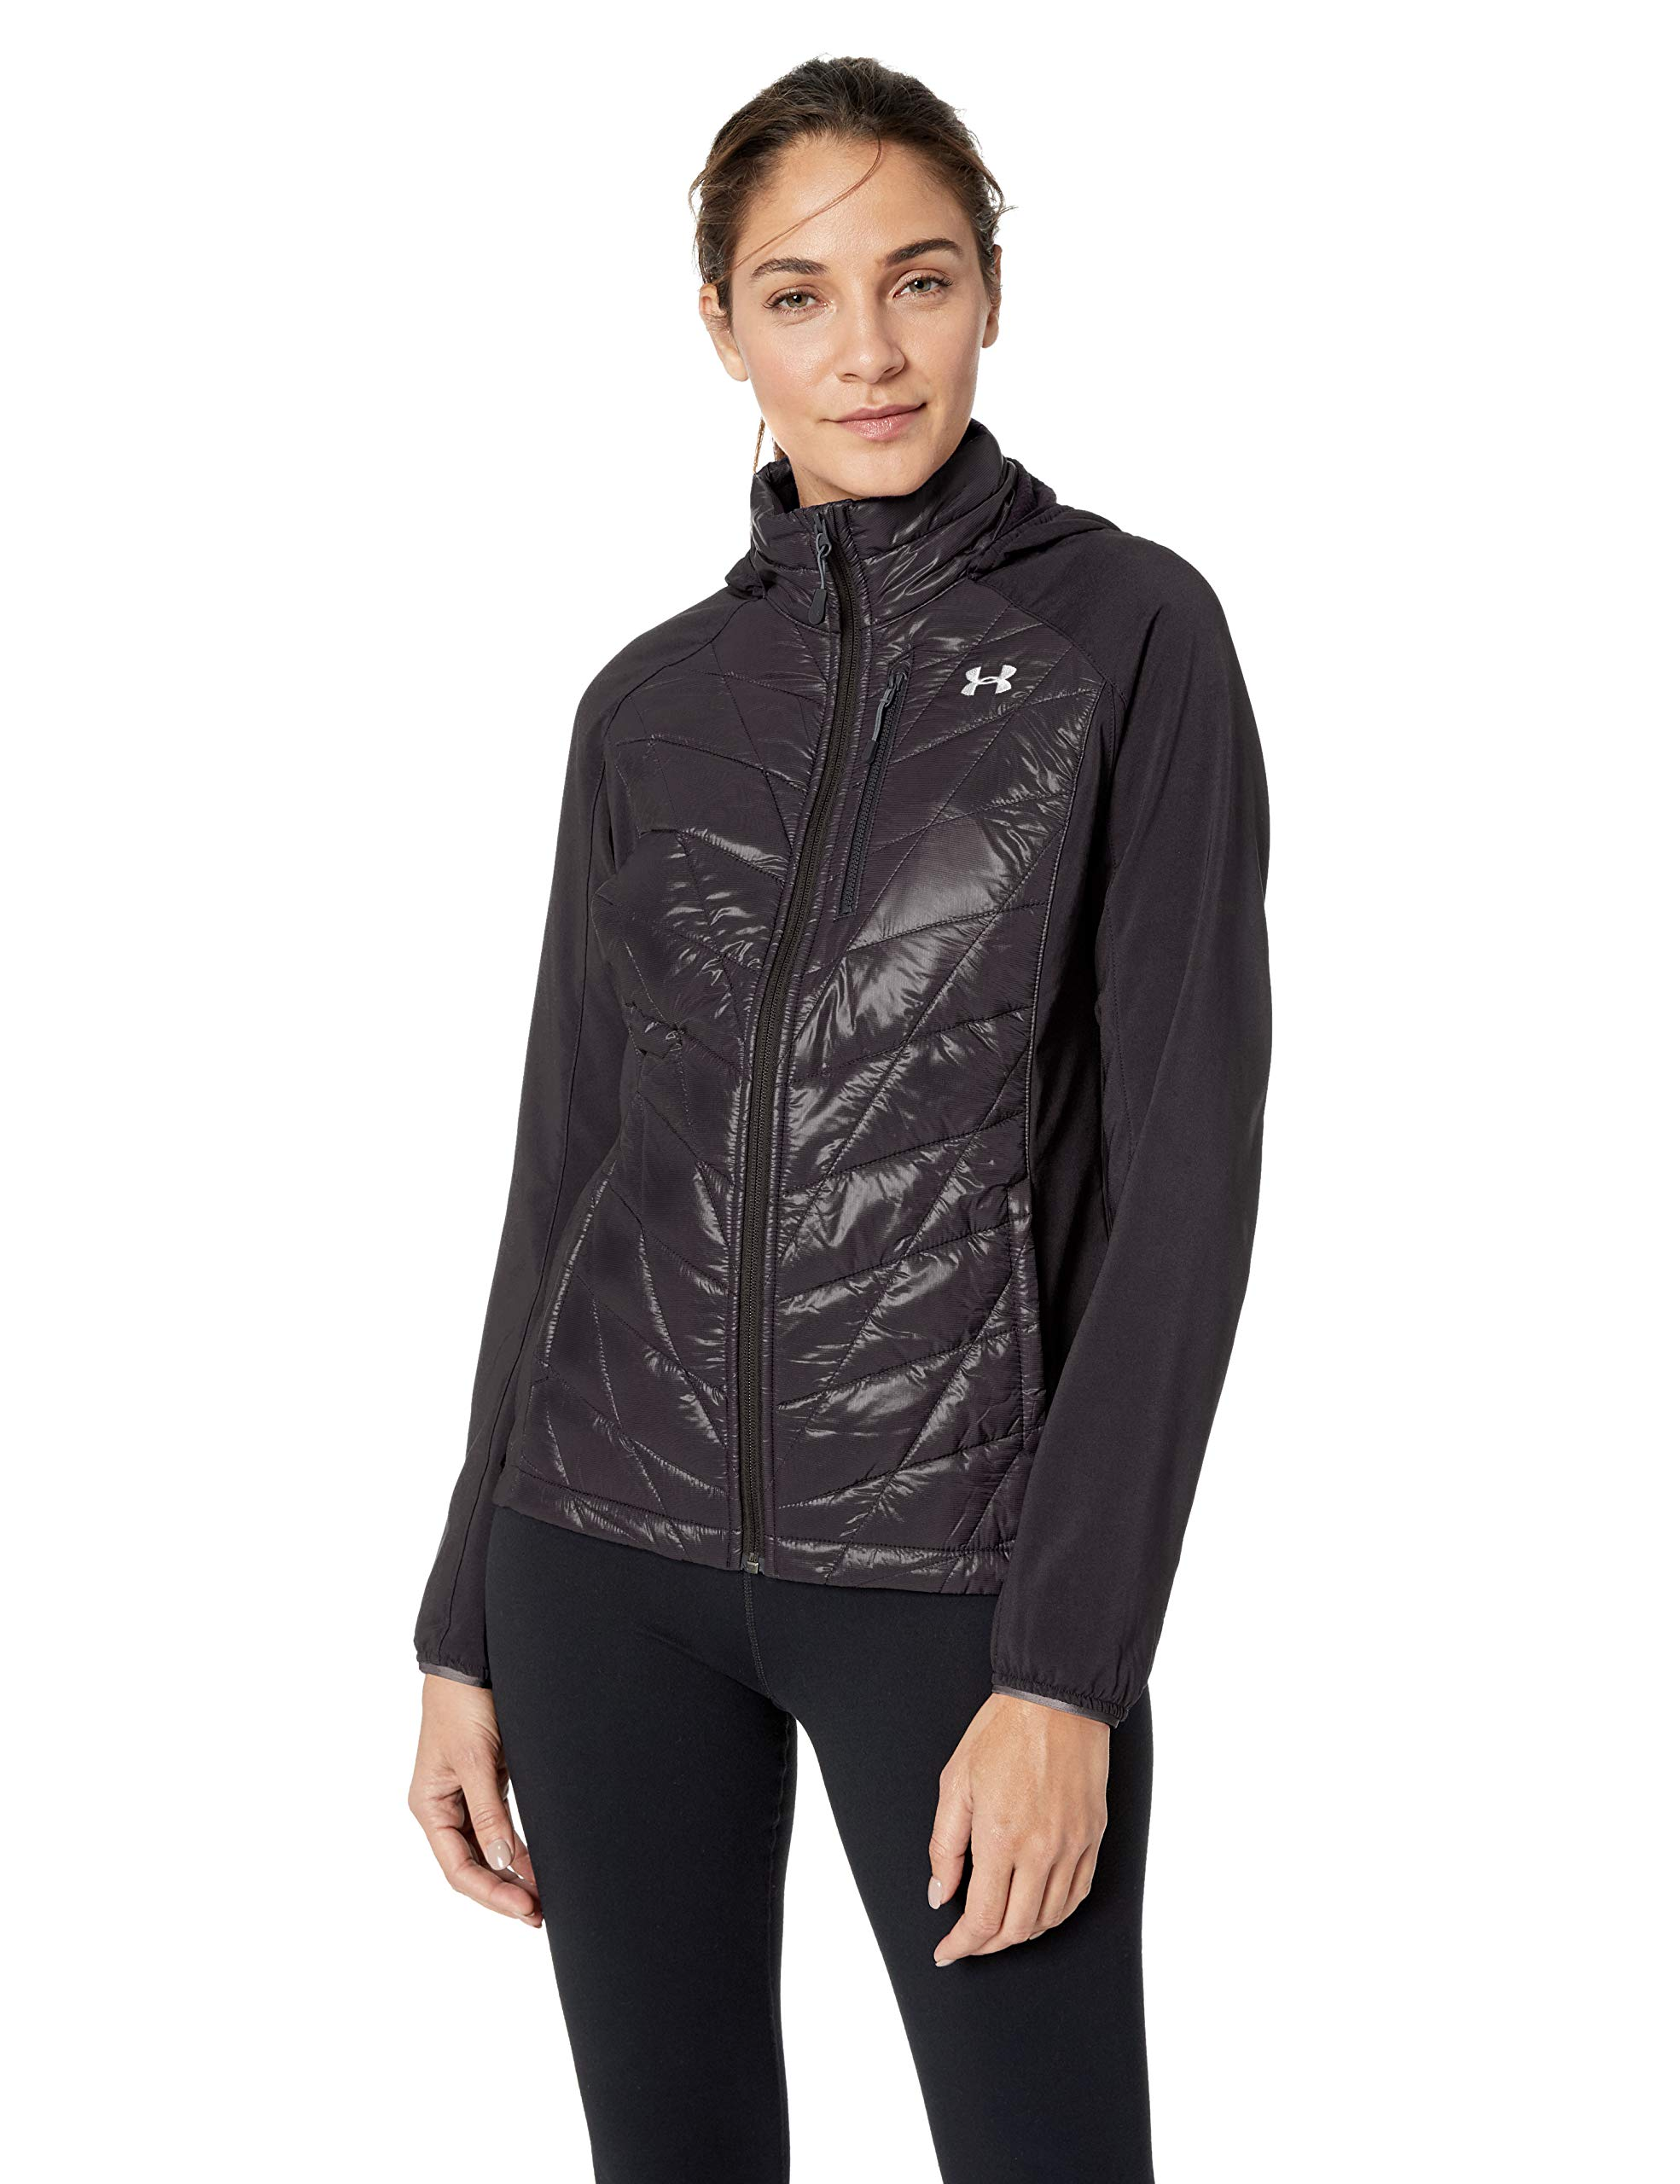 Under Armour Women's Hybrid Hooded Fleece Jacket, X-Small, Rednasty